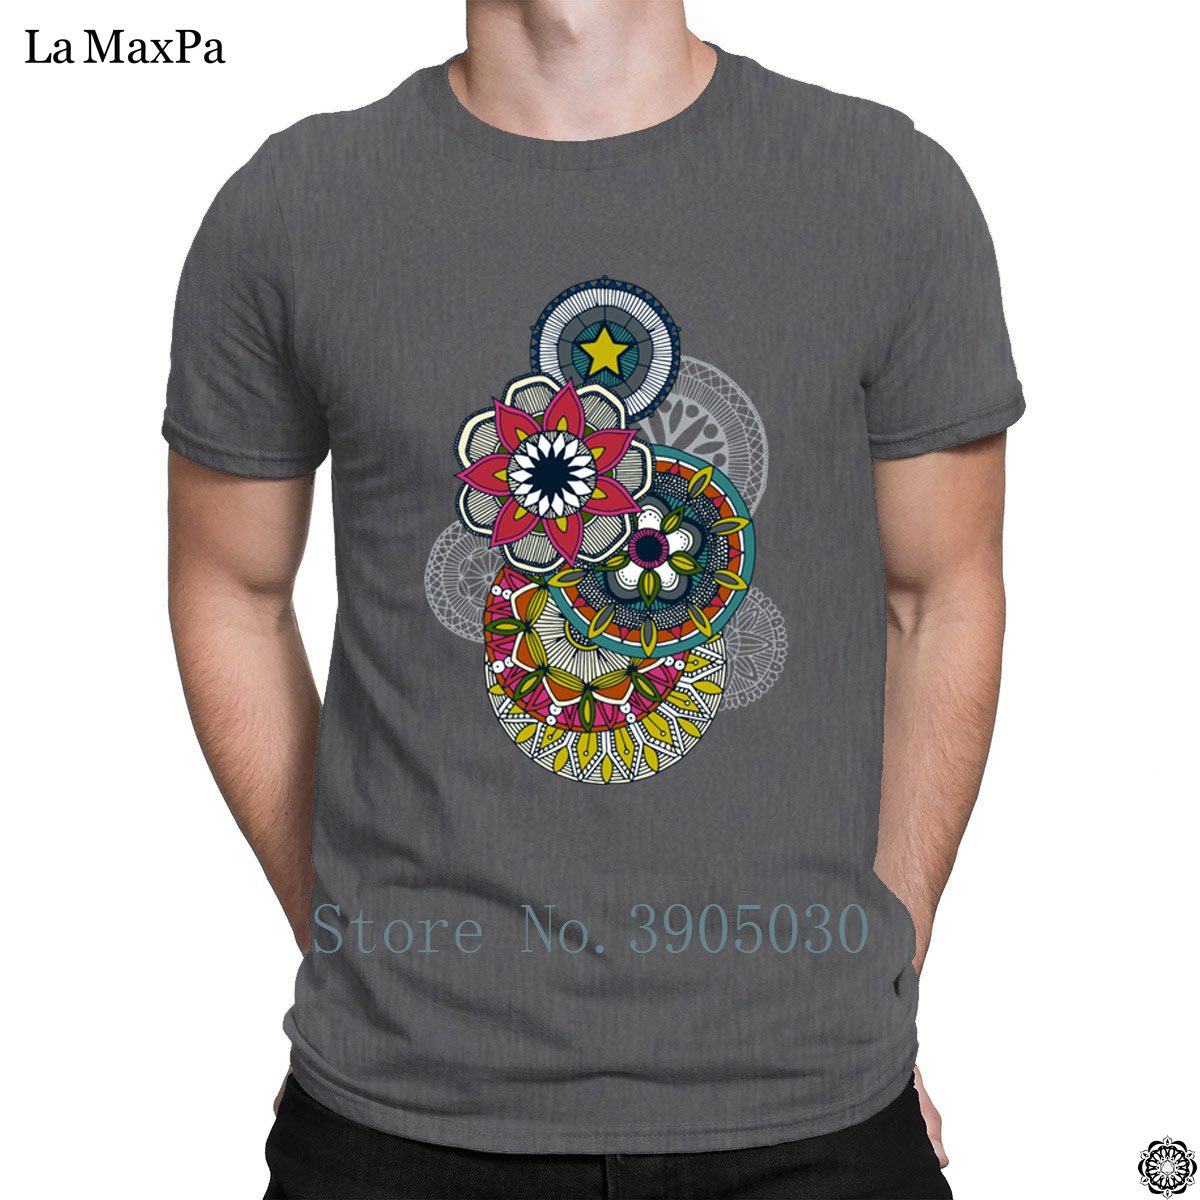 c811044762fc1 Designs Original Homme Mens T Shirt Mandala Cirque Festival T Shirt New  Arrival Tshirt Man Slogan Big Sizes Tee Shirt Graphic-in T-Shirts from  Men s ...